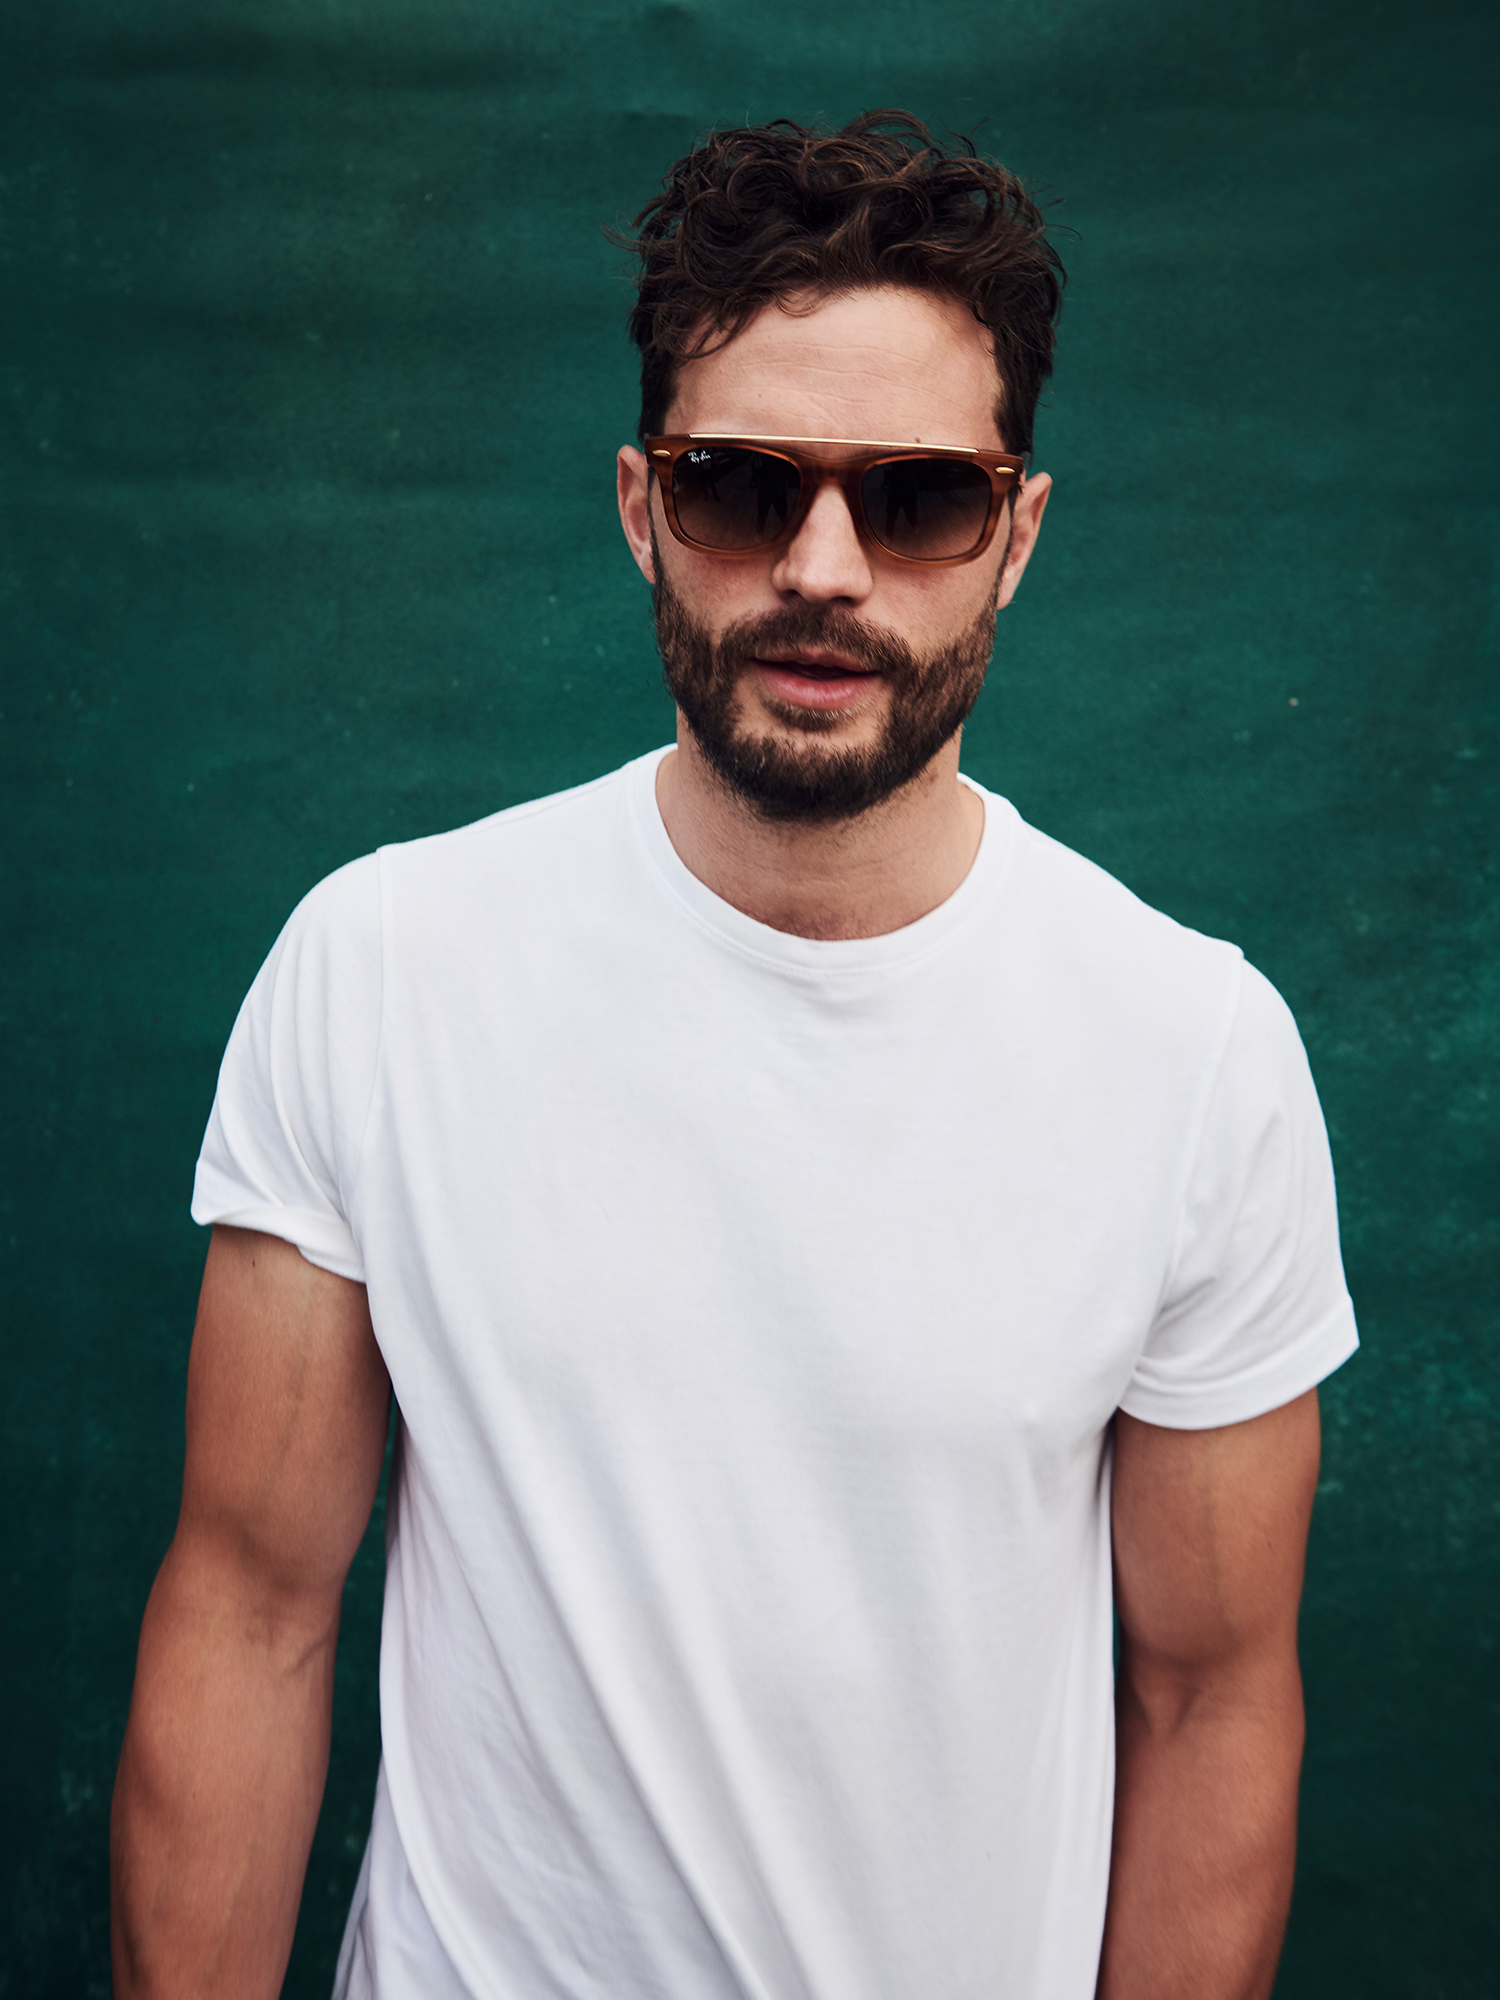 LONDON, UNITED KINGDOM - MAY 24: In this handout image supplied by Ray-Ban, Jamie Dornan wearing Ray-Ban pose at the Ray-Ban Studios during All Points East Festival at Victoria Park on May 24, 2019 in London, England. (Photo by Joe Quigg/Ray-Ban via Getty Images)